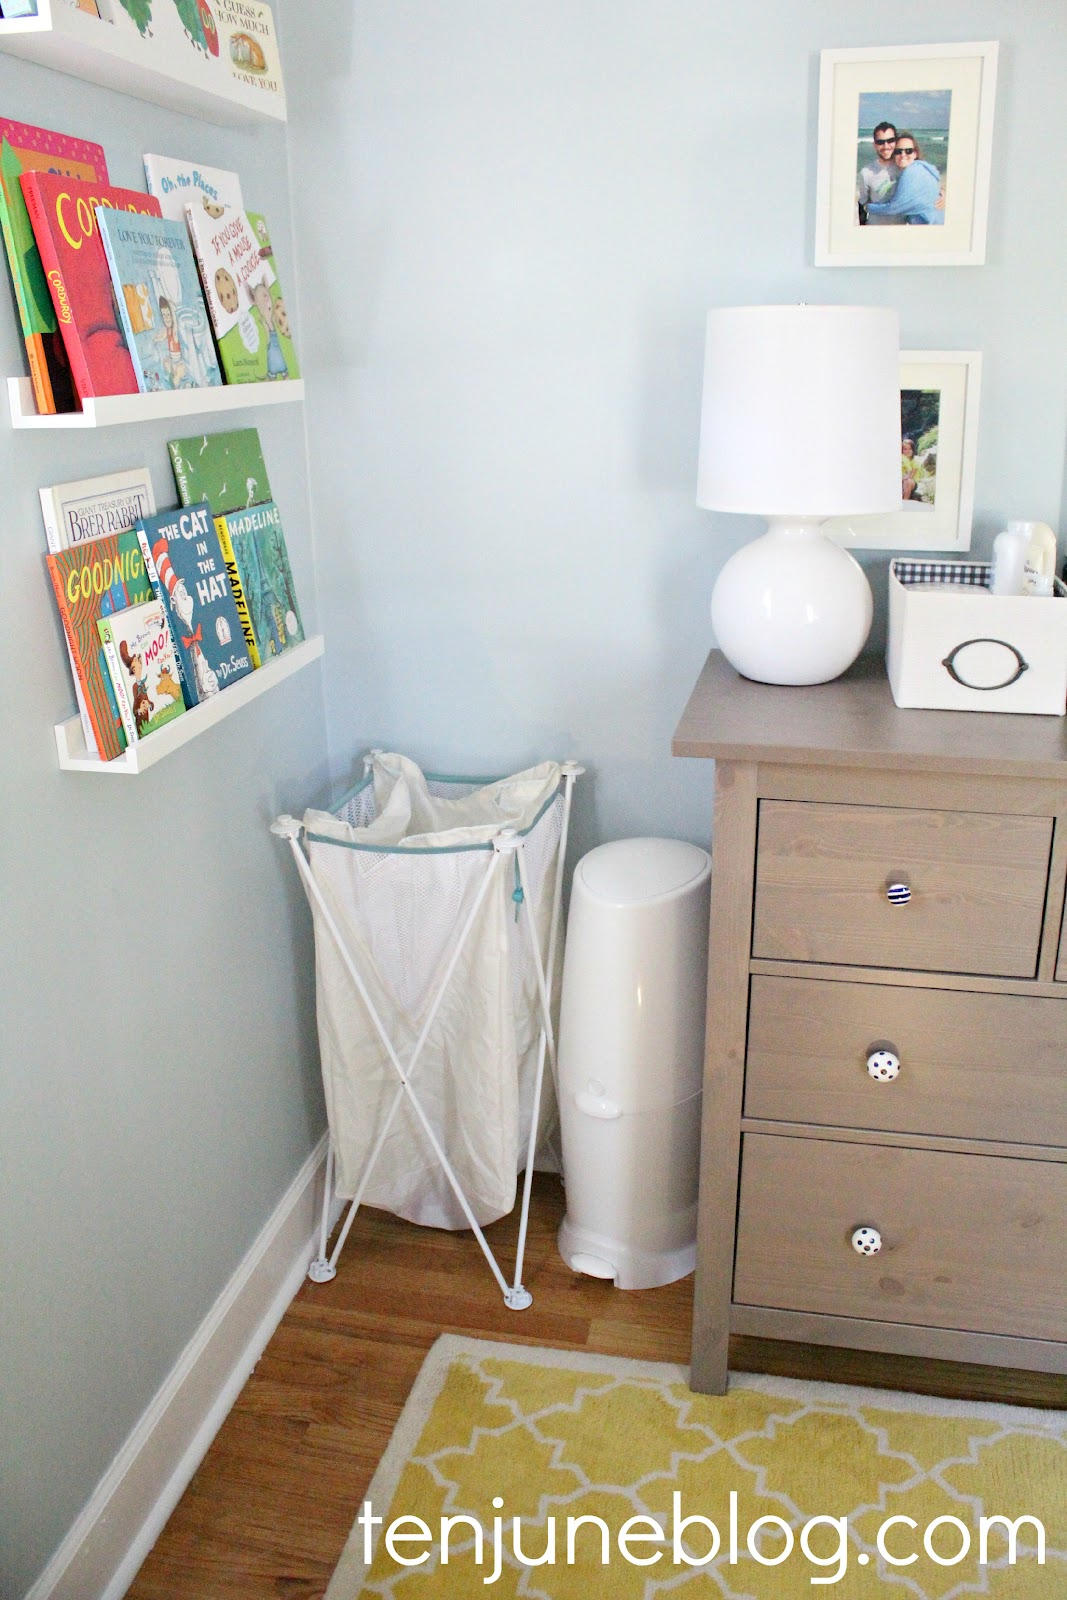 Kiefer Man Found In Baby Bedroom: Ten June: Our Baby Boy's Nursery: The Final Reveal